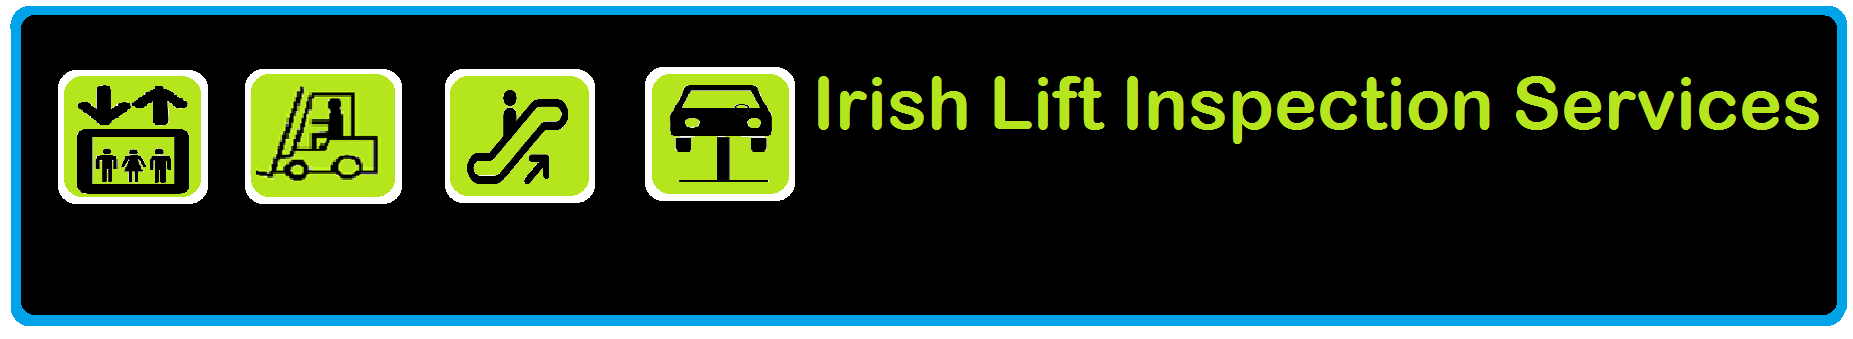 Irish Lift Inspection Services